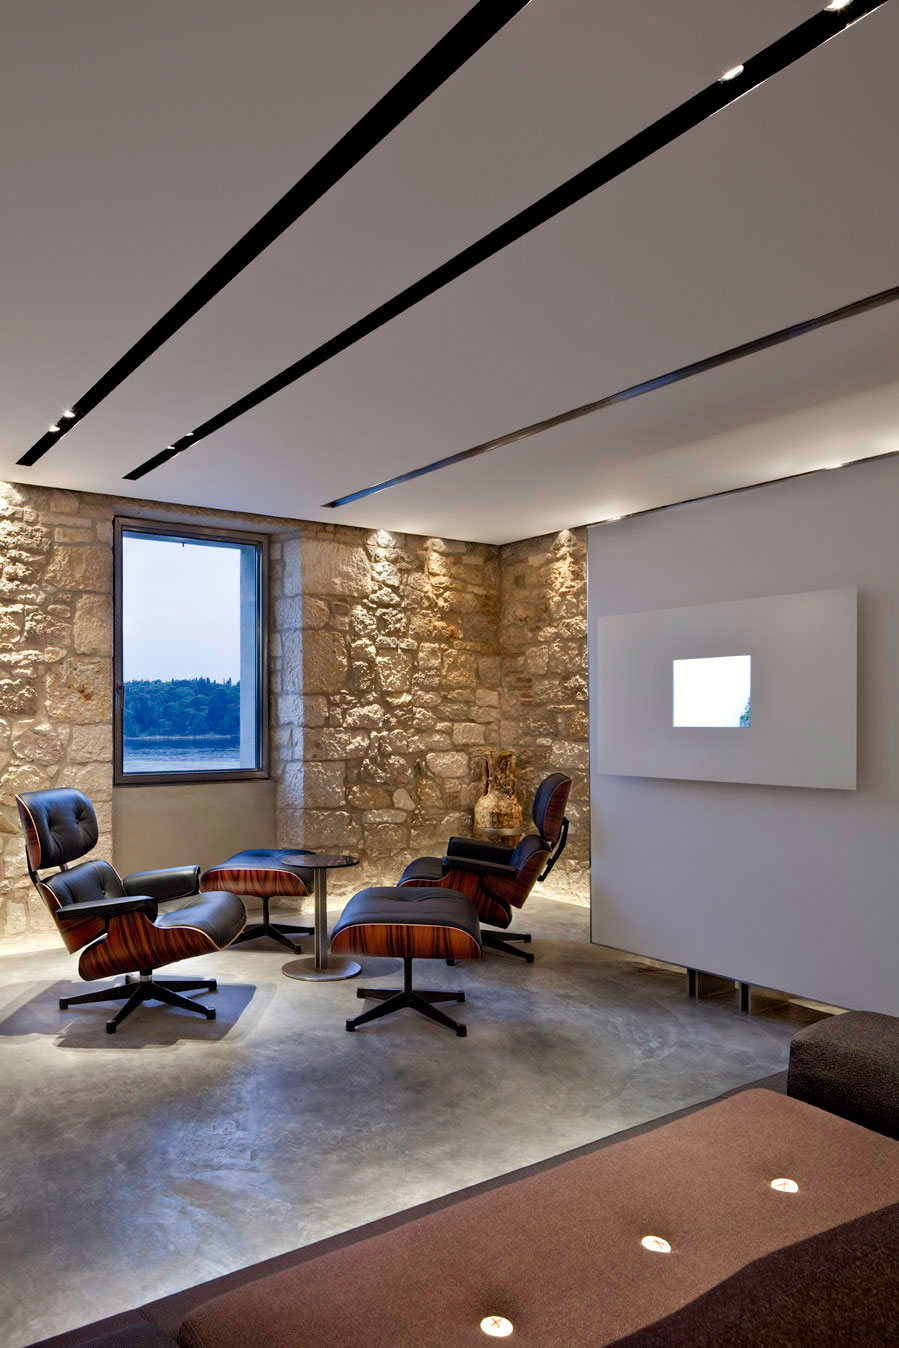 Stone Walls, Living Room, Renovation of an 18th Century Building in Rovinj, Croatia